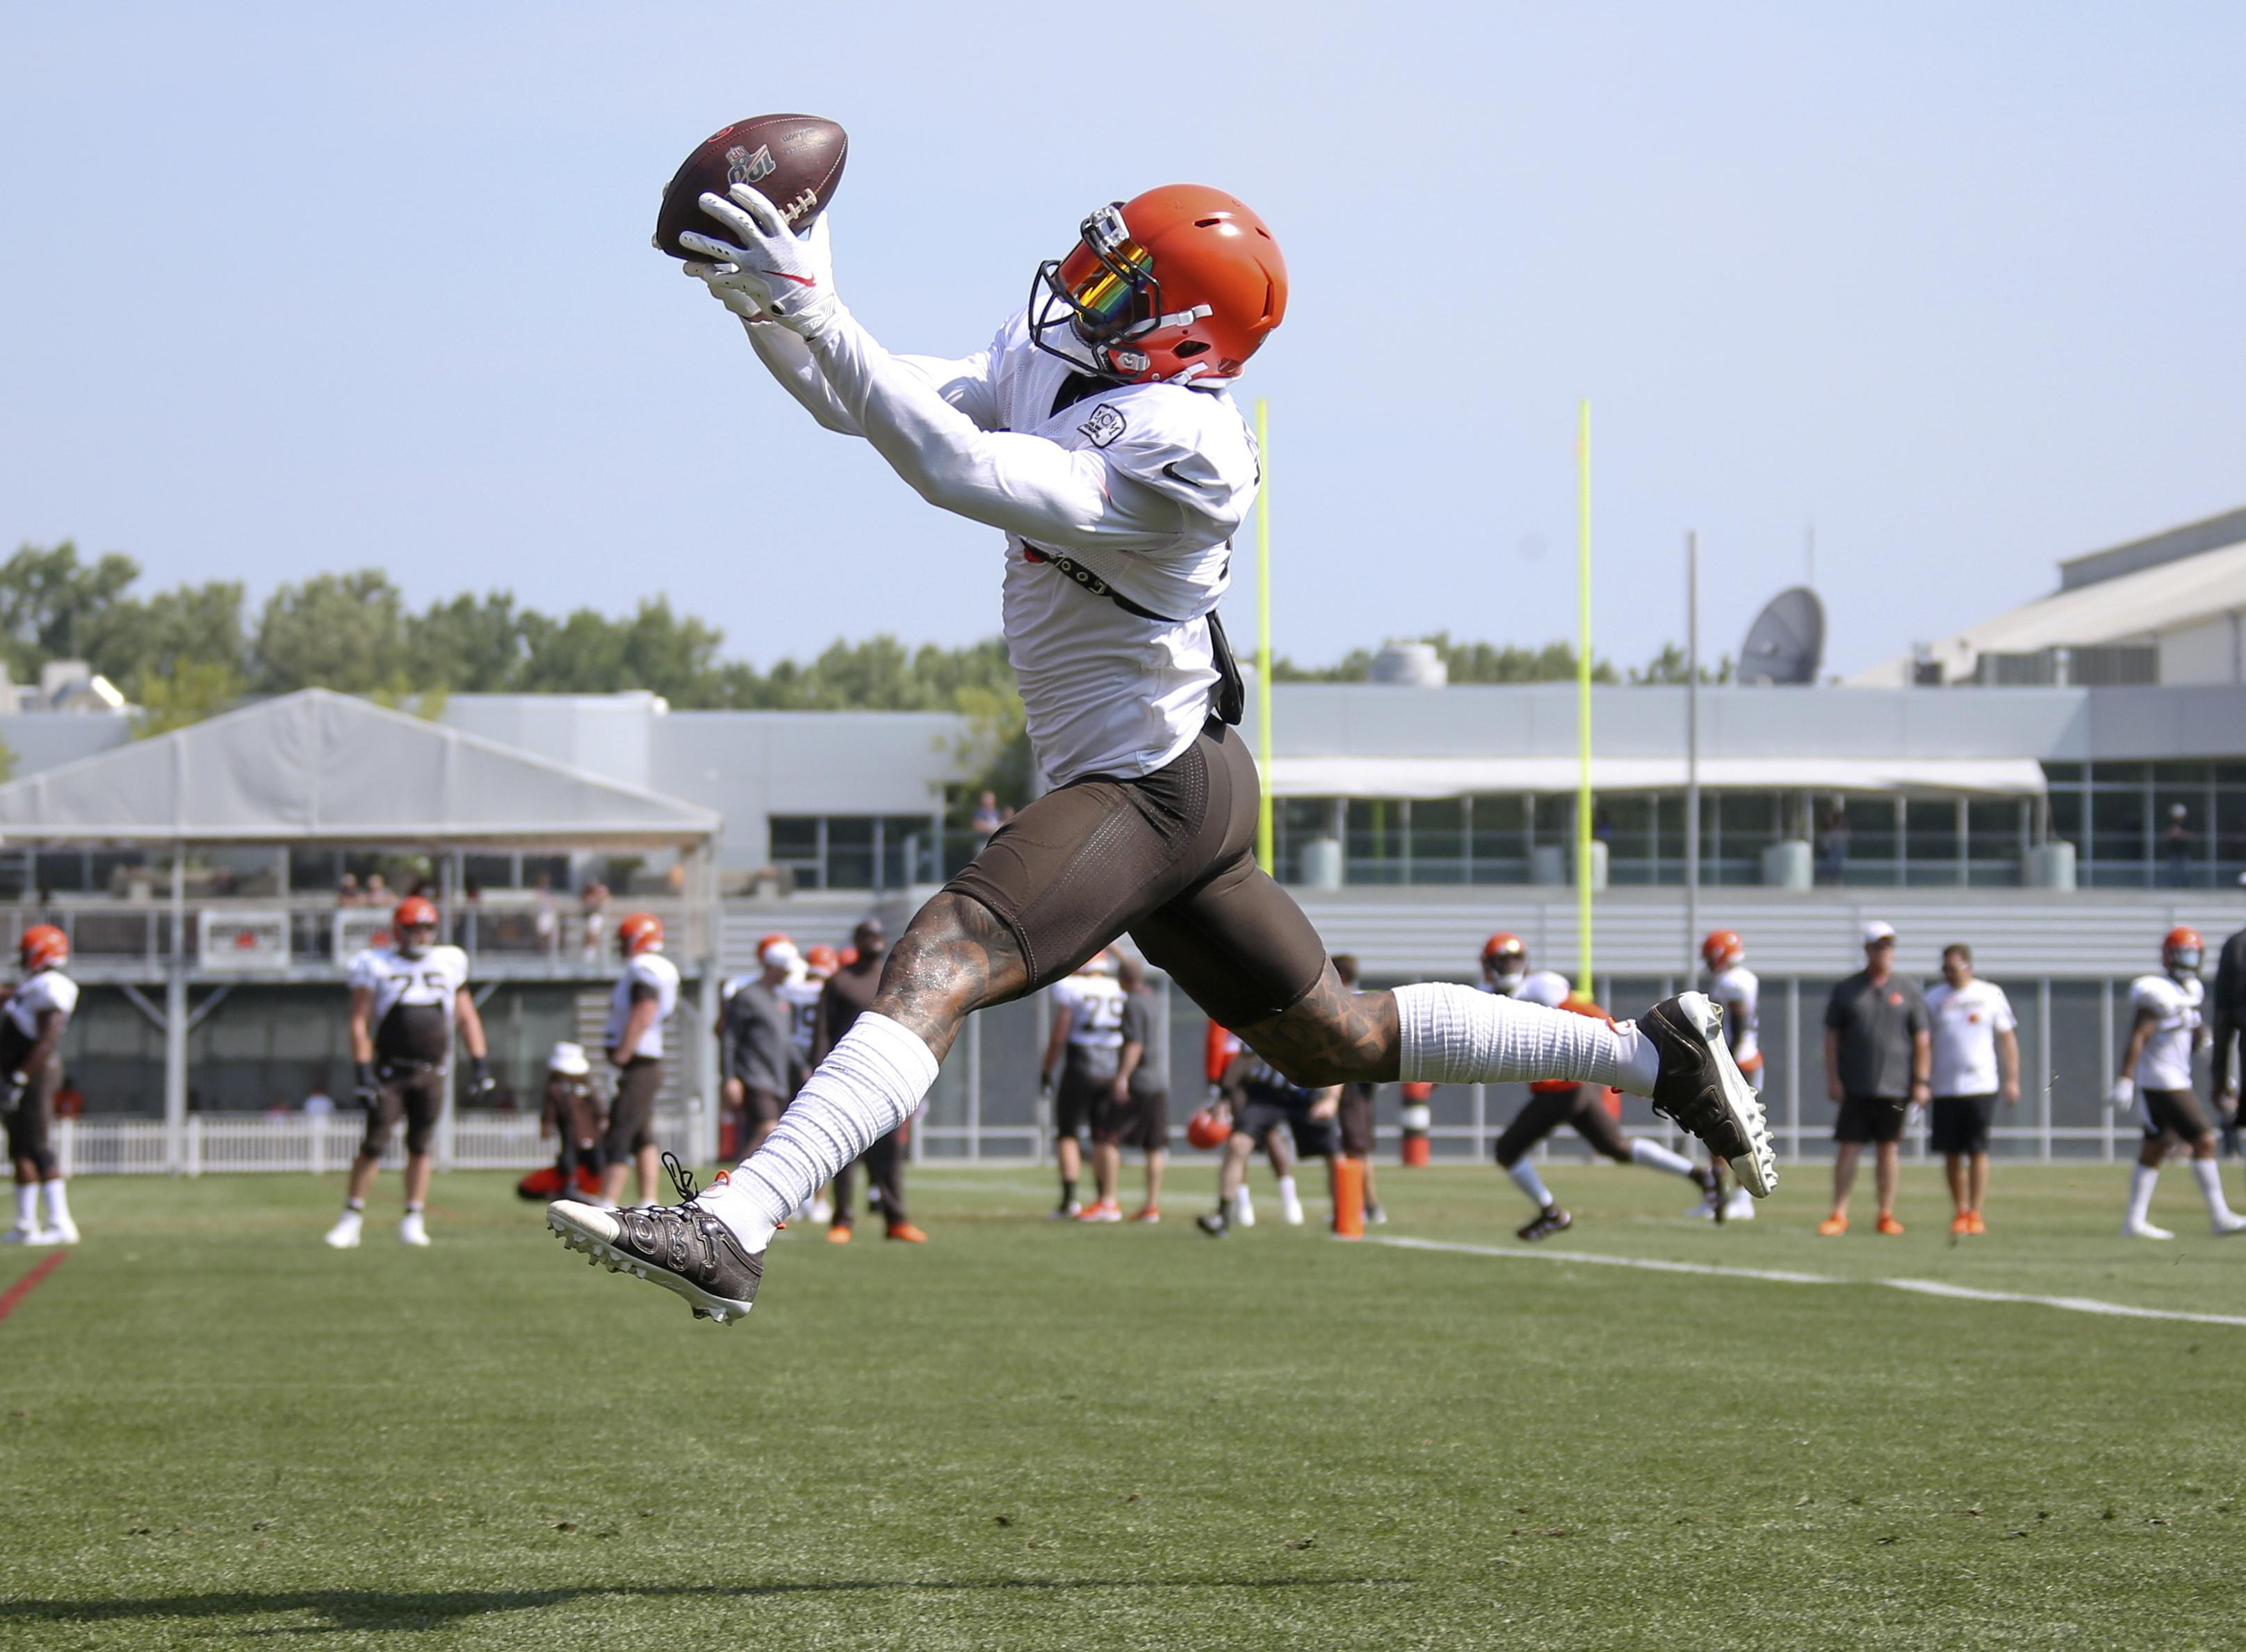 new style 313f3 37d0a Unhip: Browns' Odell Beckham Jr. slowed by injury heading ...